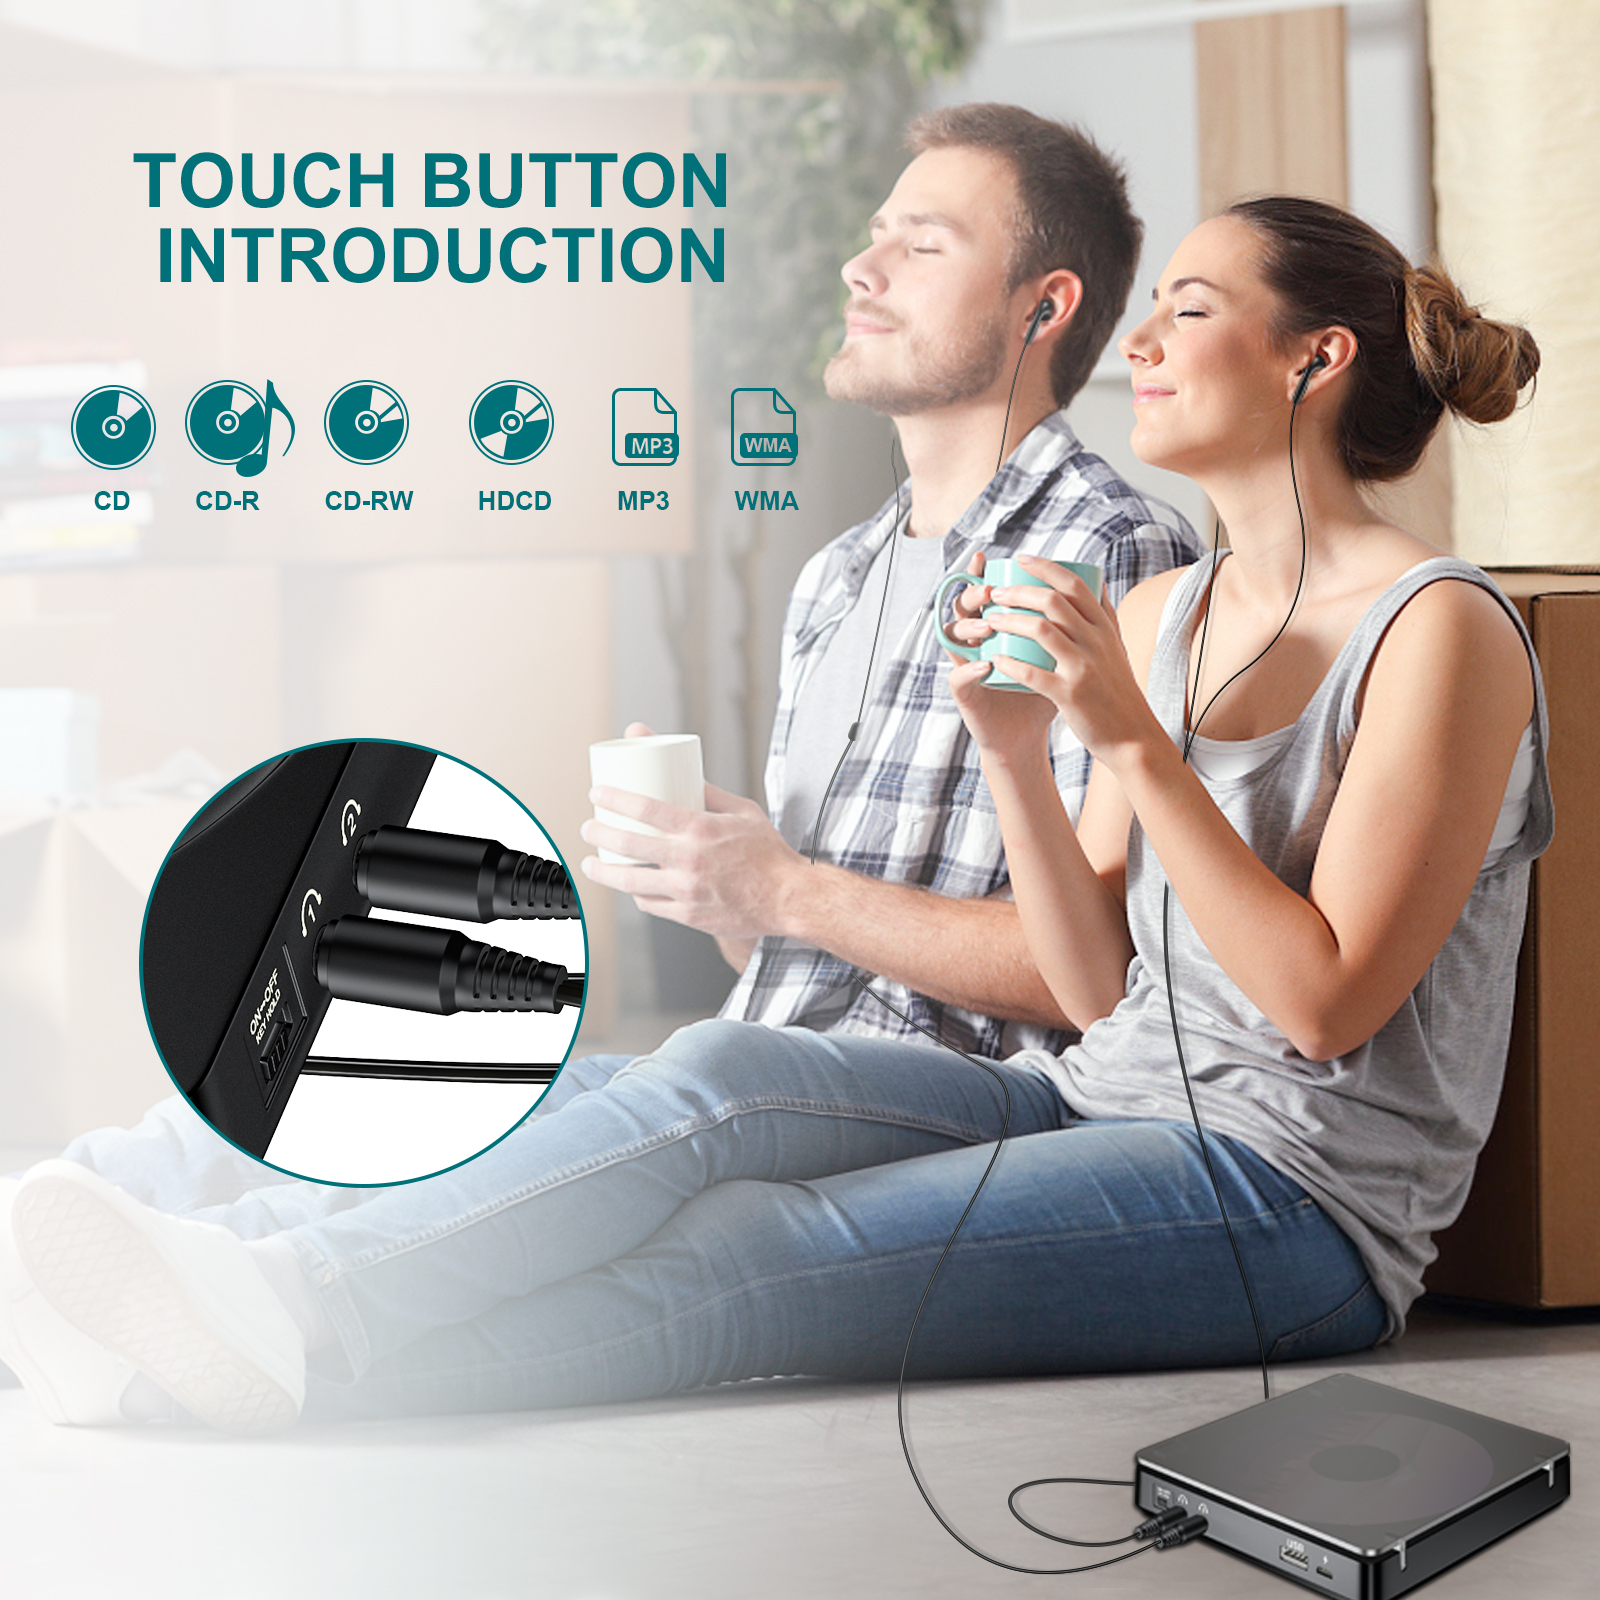 Portable CD Player Double Headphone Version Touch Button Reproductor CD Walkman Discman Rechargeable Shockproof LCD Display 2